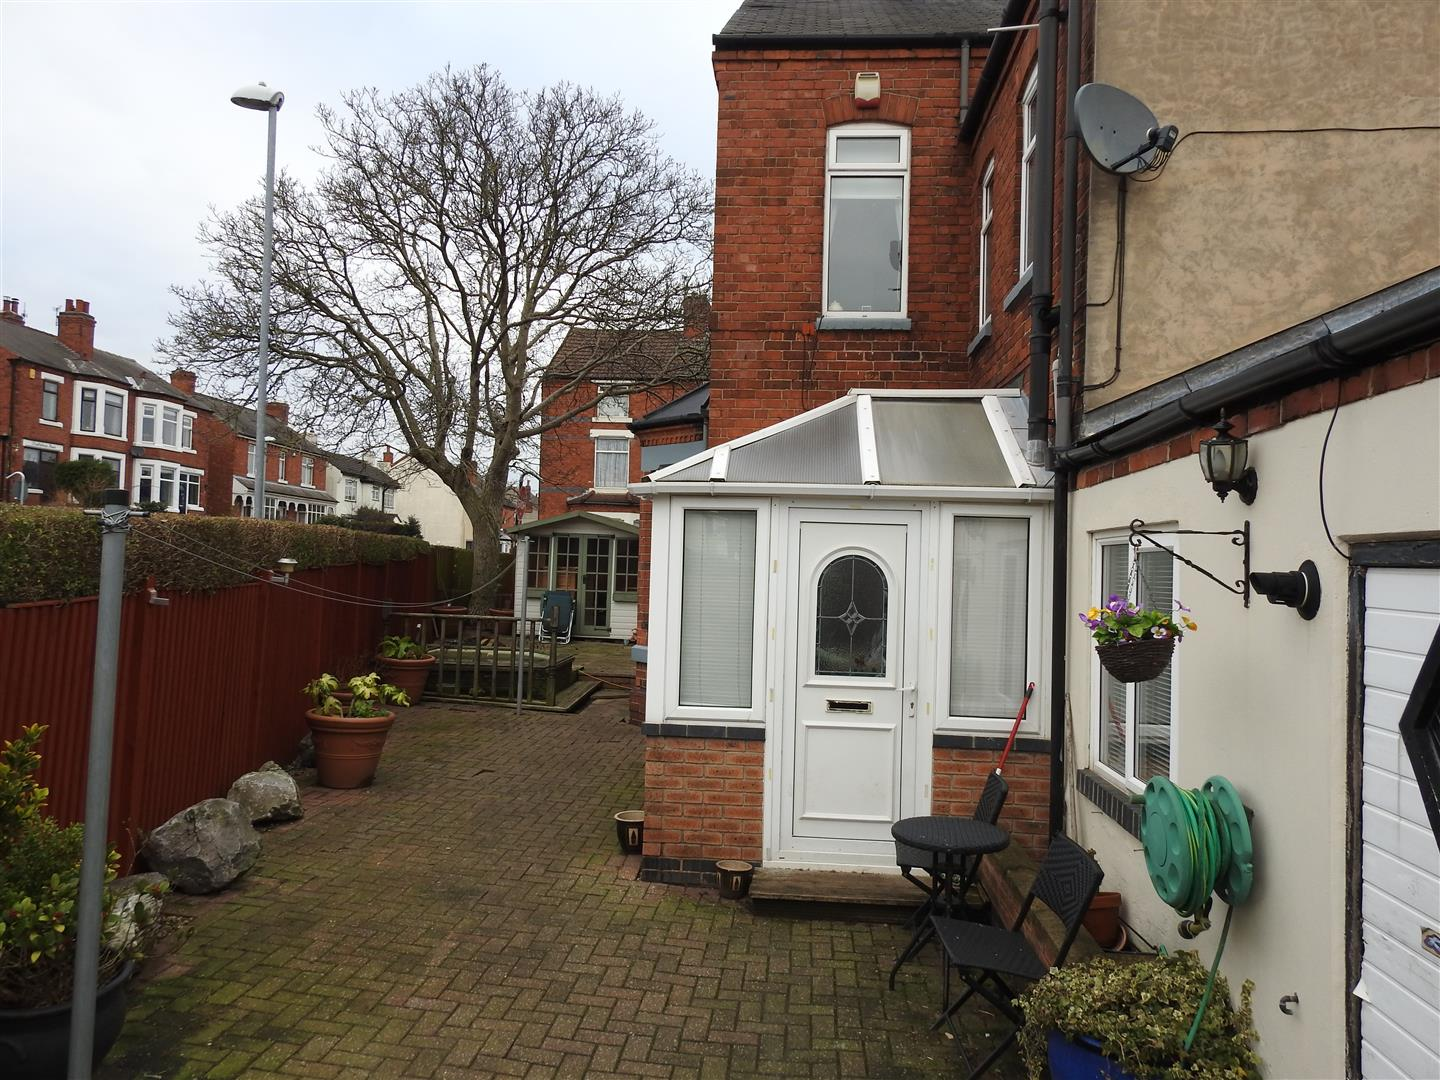 5 Bedrooms End Of Terrace House for sale in Derbyshire Lane, Hucknall, Nottingham